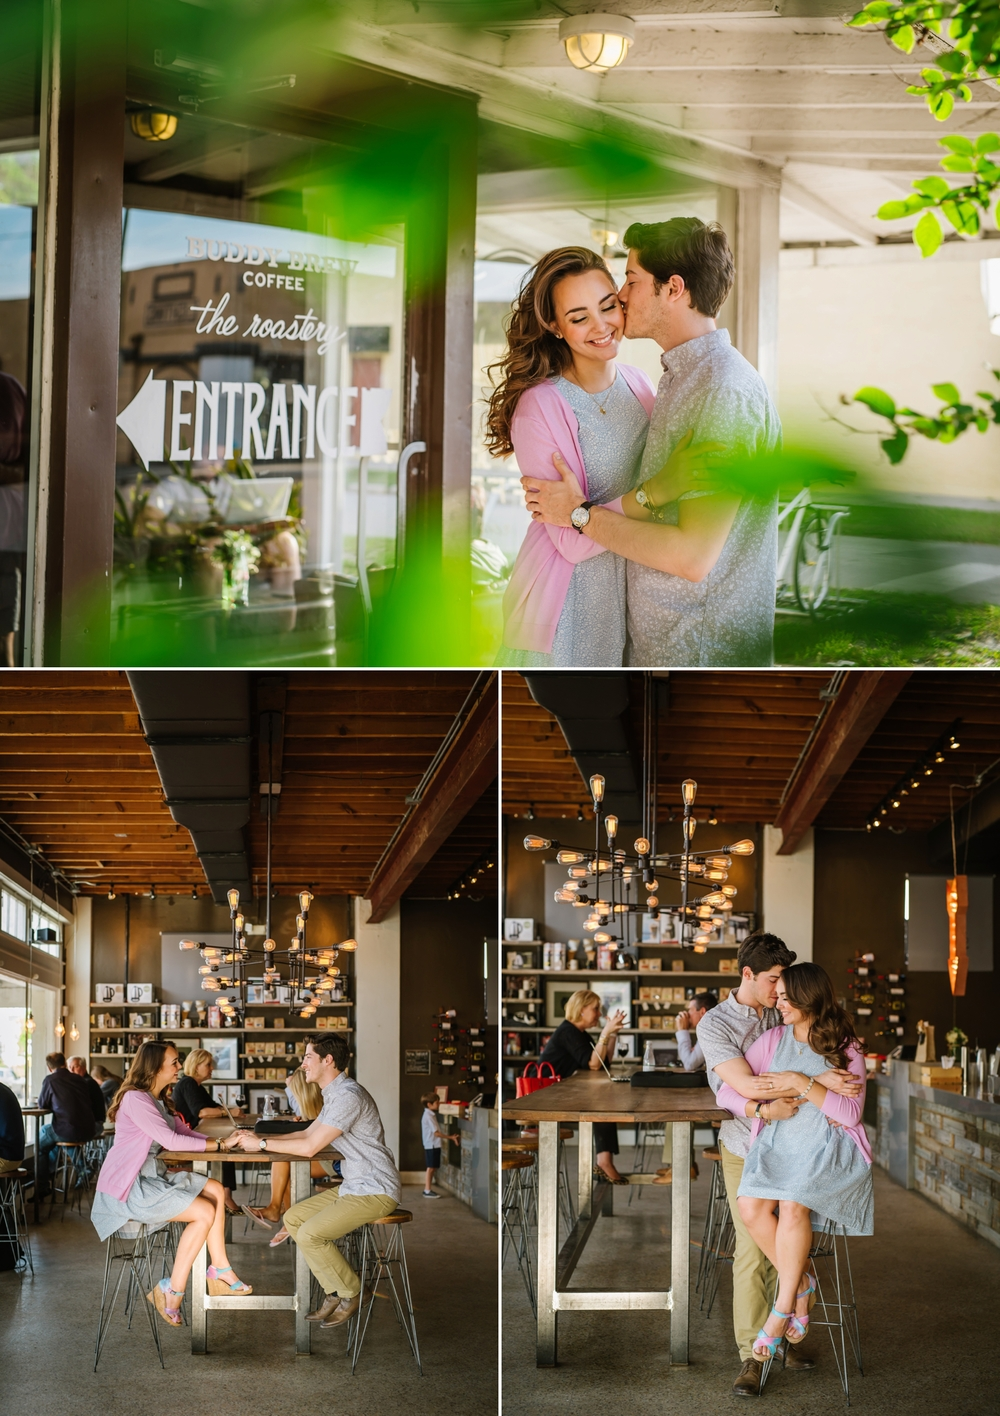 ashlee-hamon-photography-tampa-buddy-brew-coffee-shop-engagement_0004.jpg